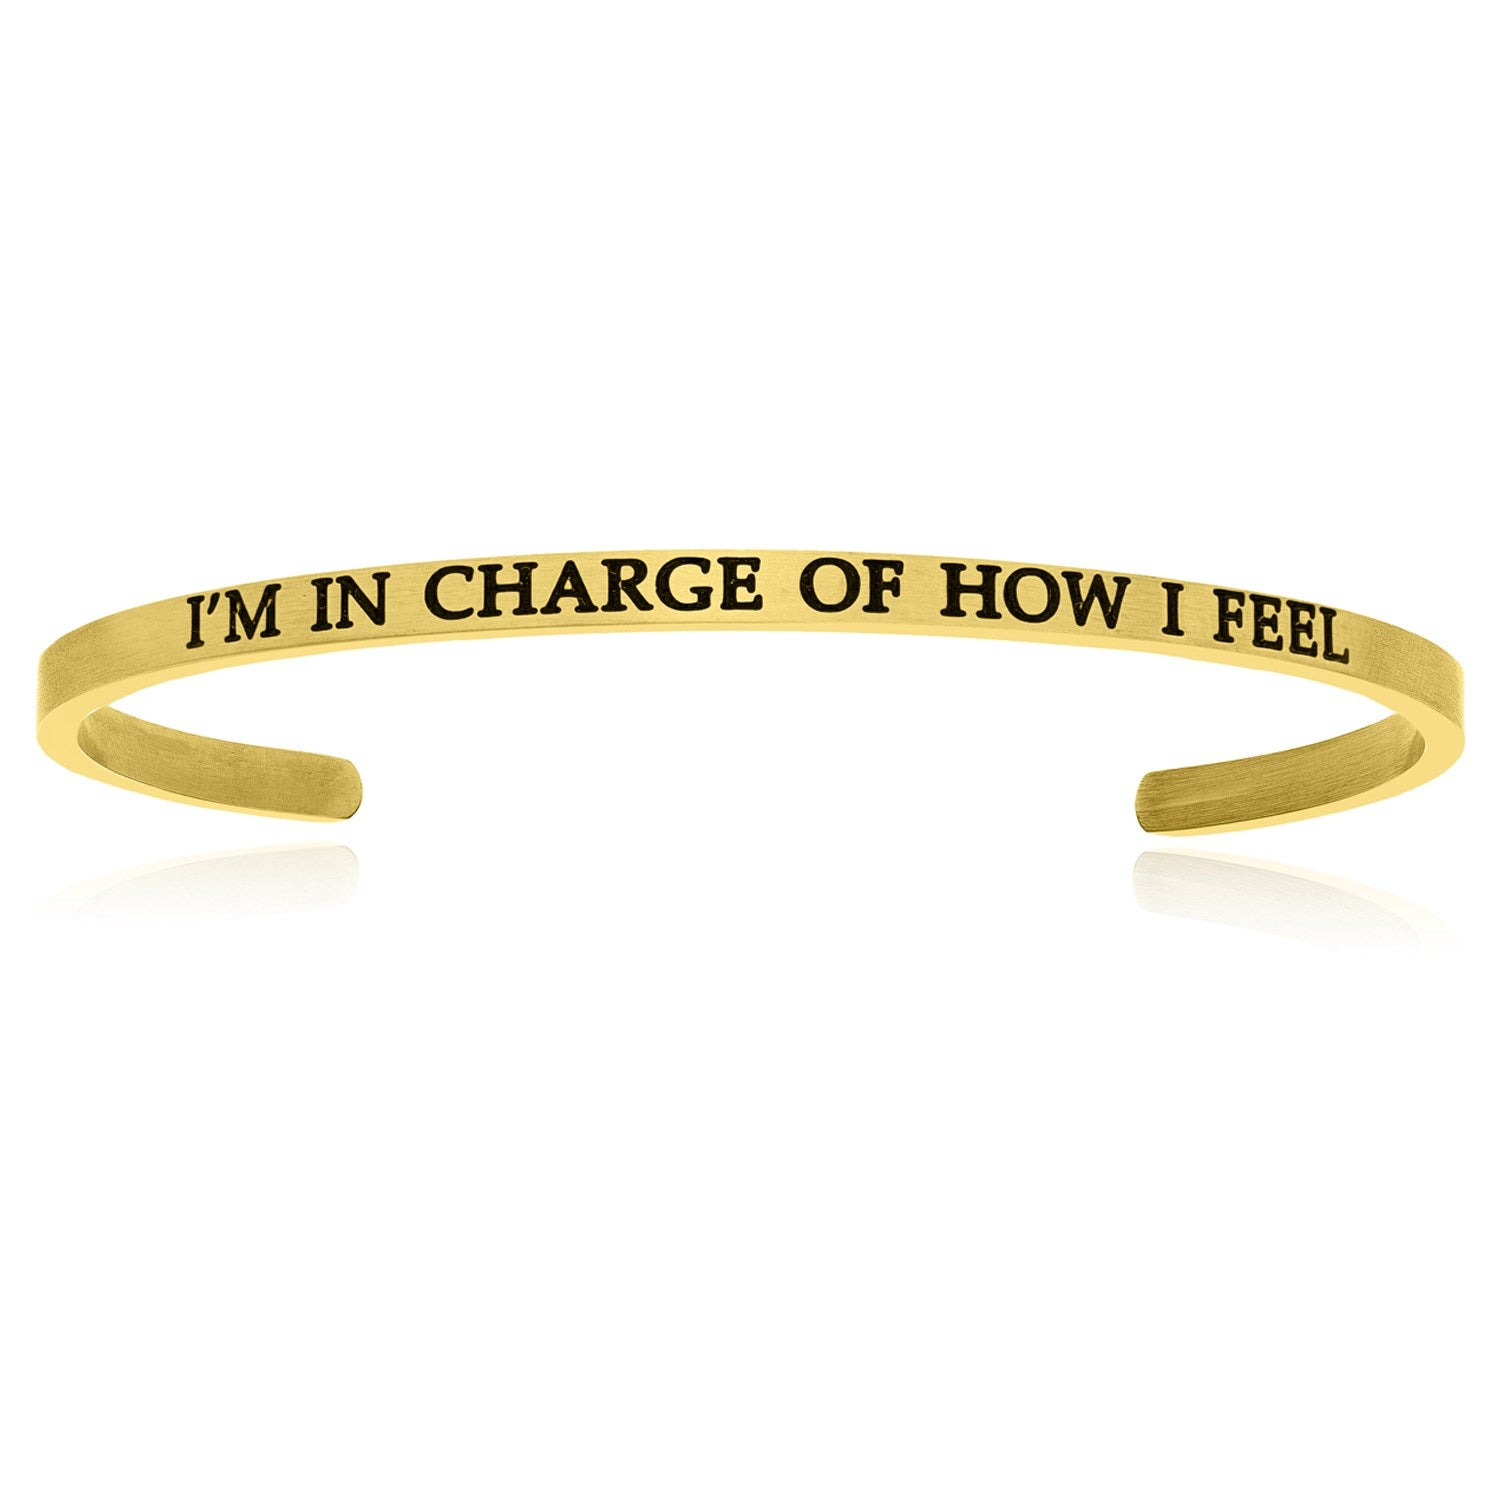 Yellow Stainless Steel I'm In Charge Of How I Feel Cuff Bracelet